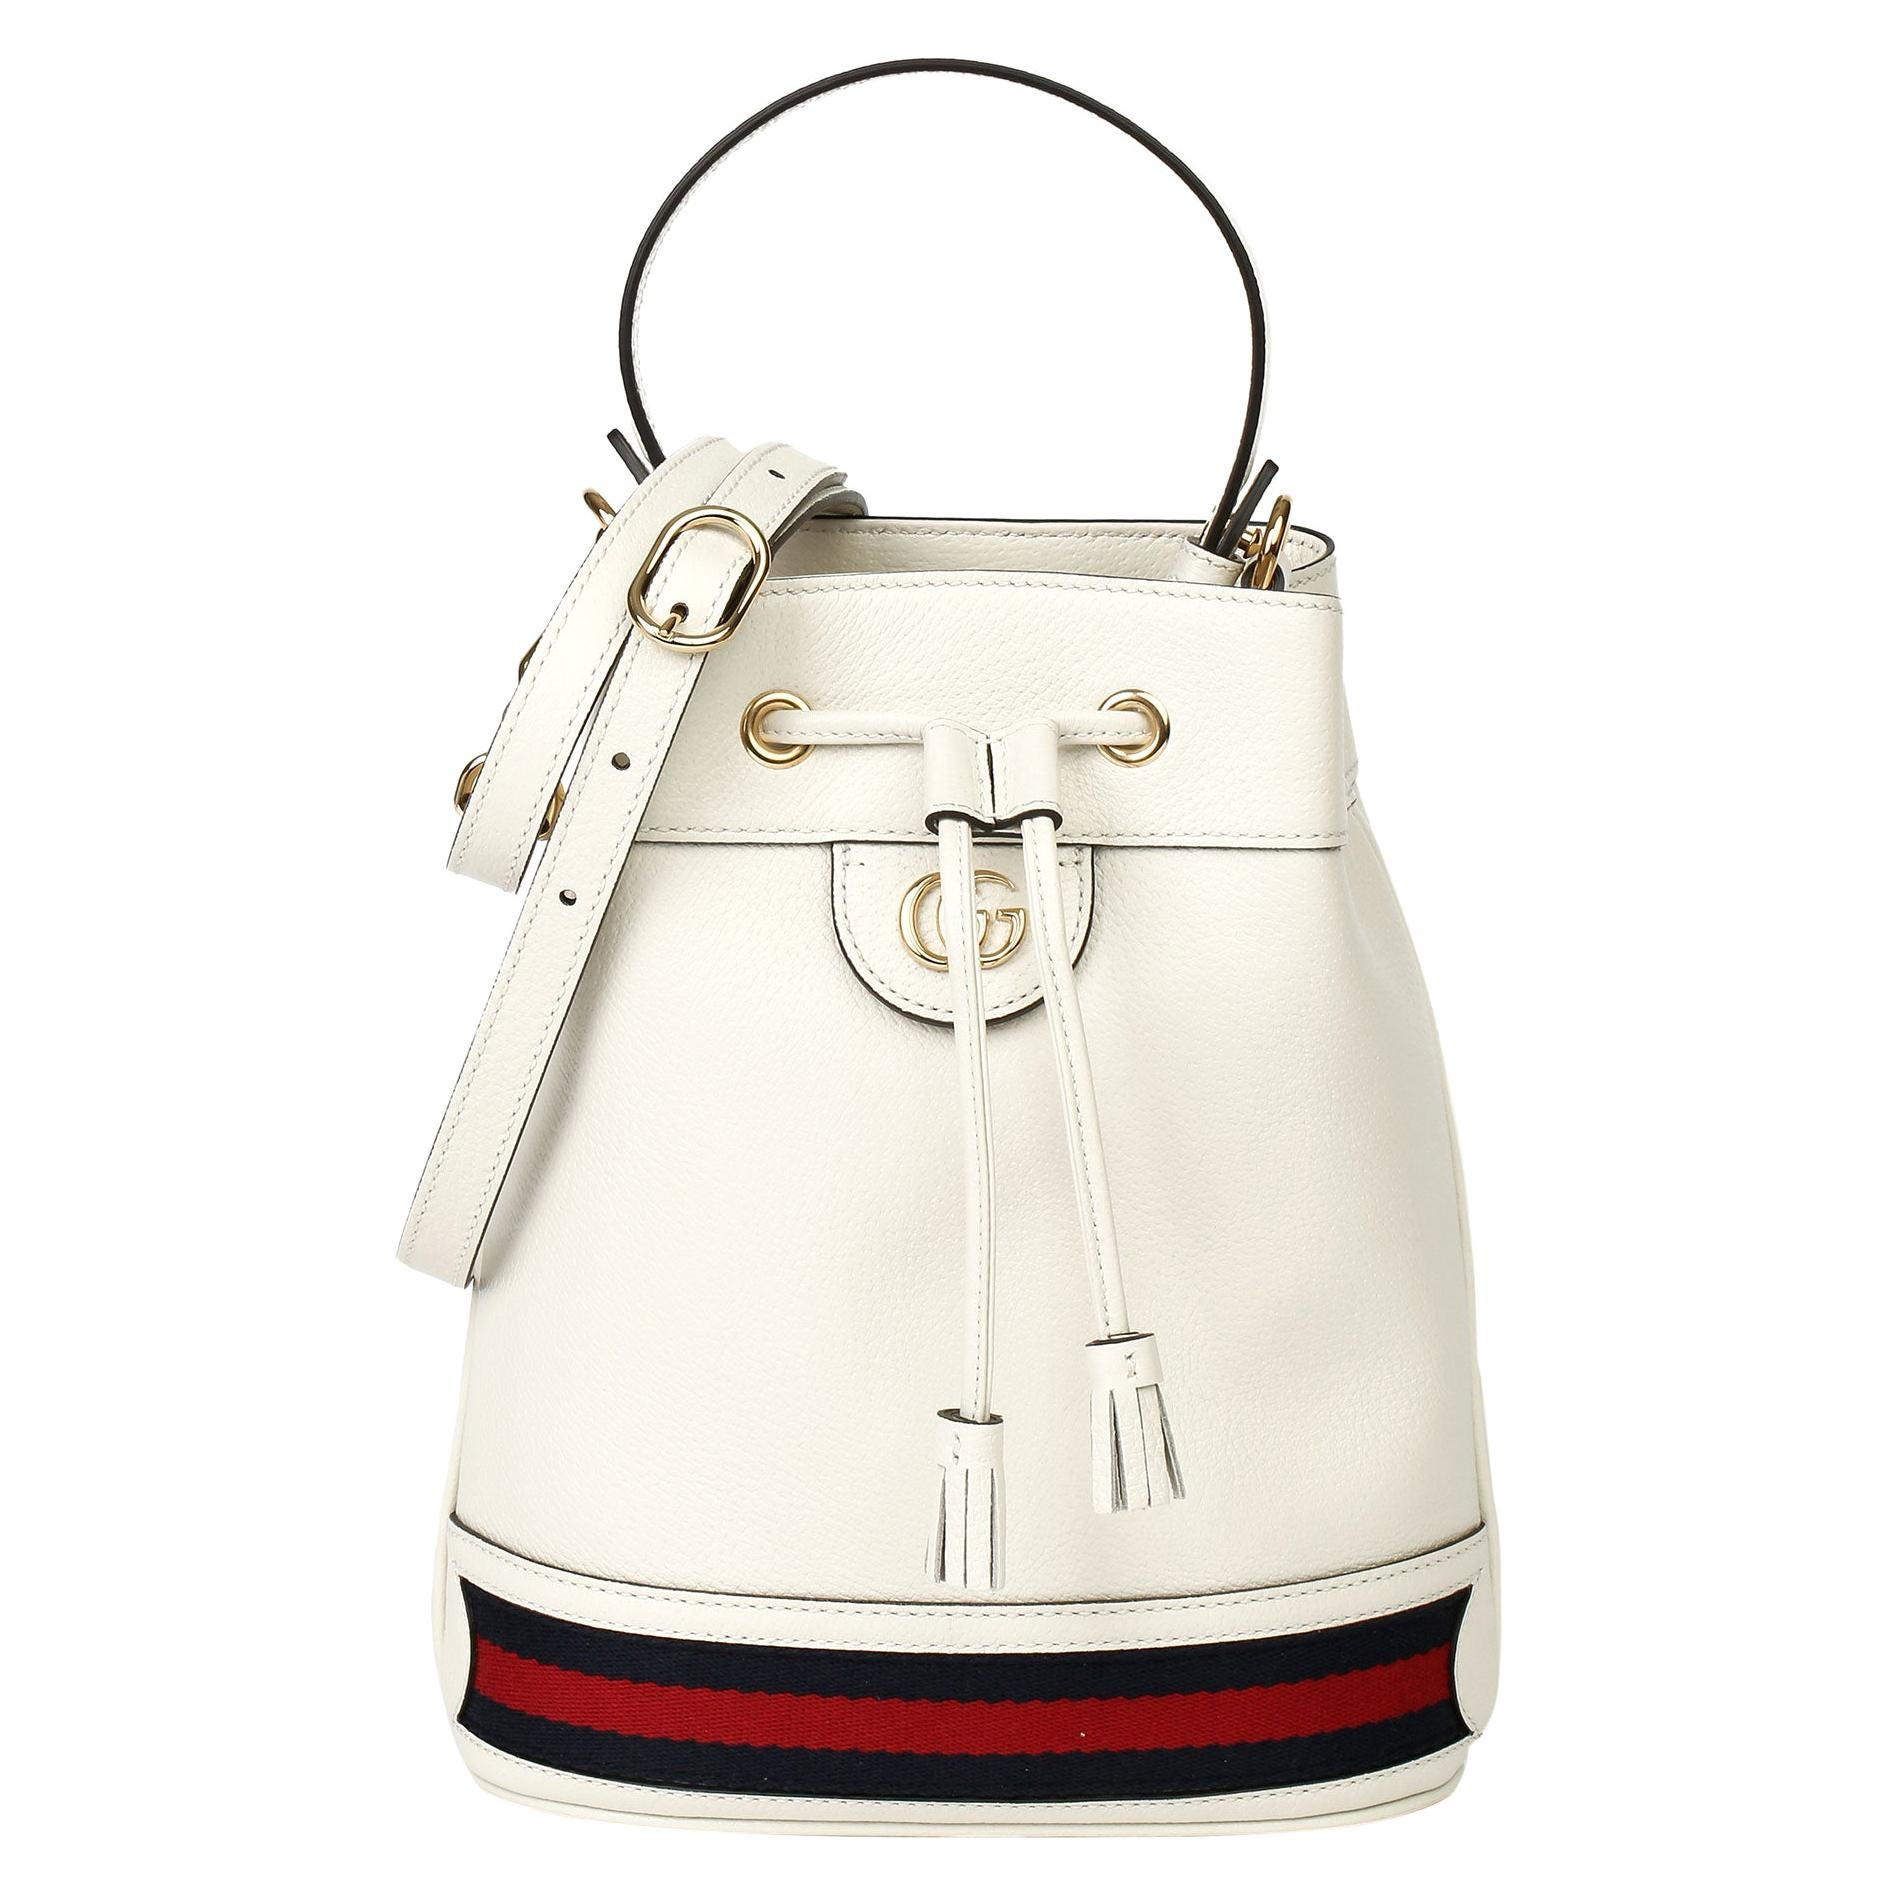 2021 Gucci White Pigskin Leather Web Orphidia Bucket Bag